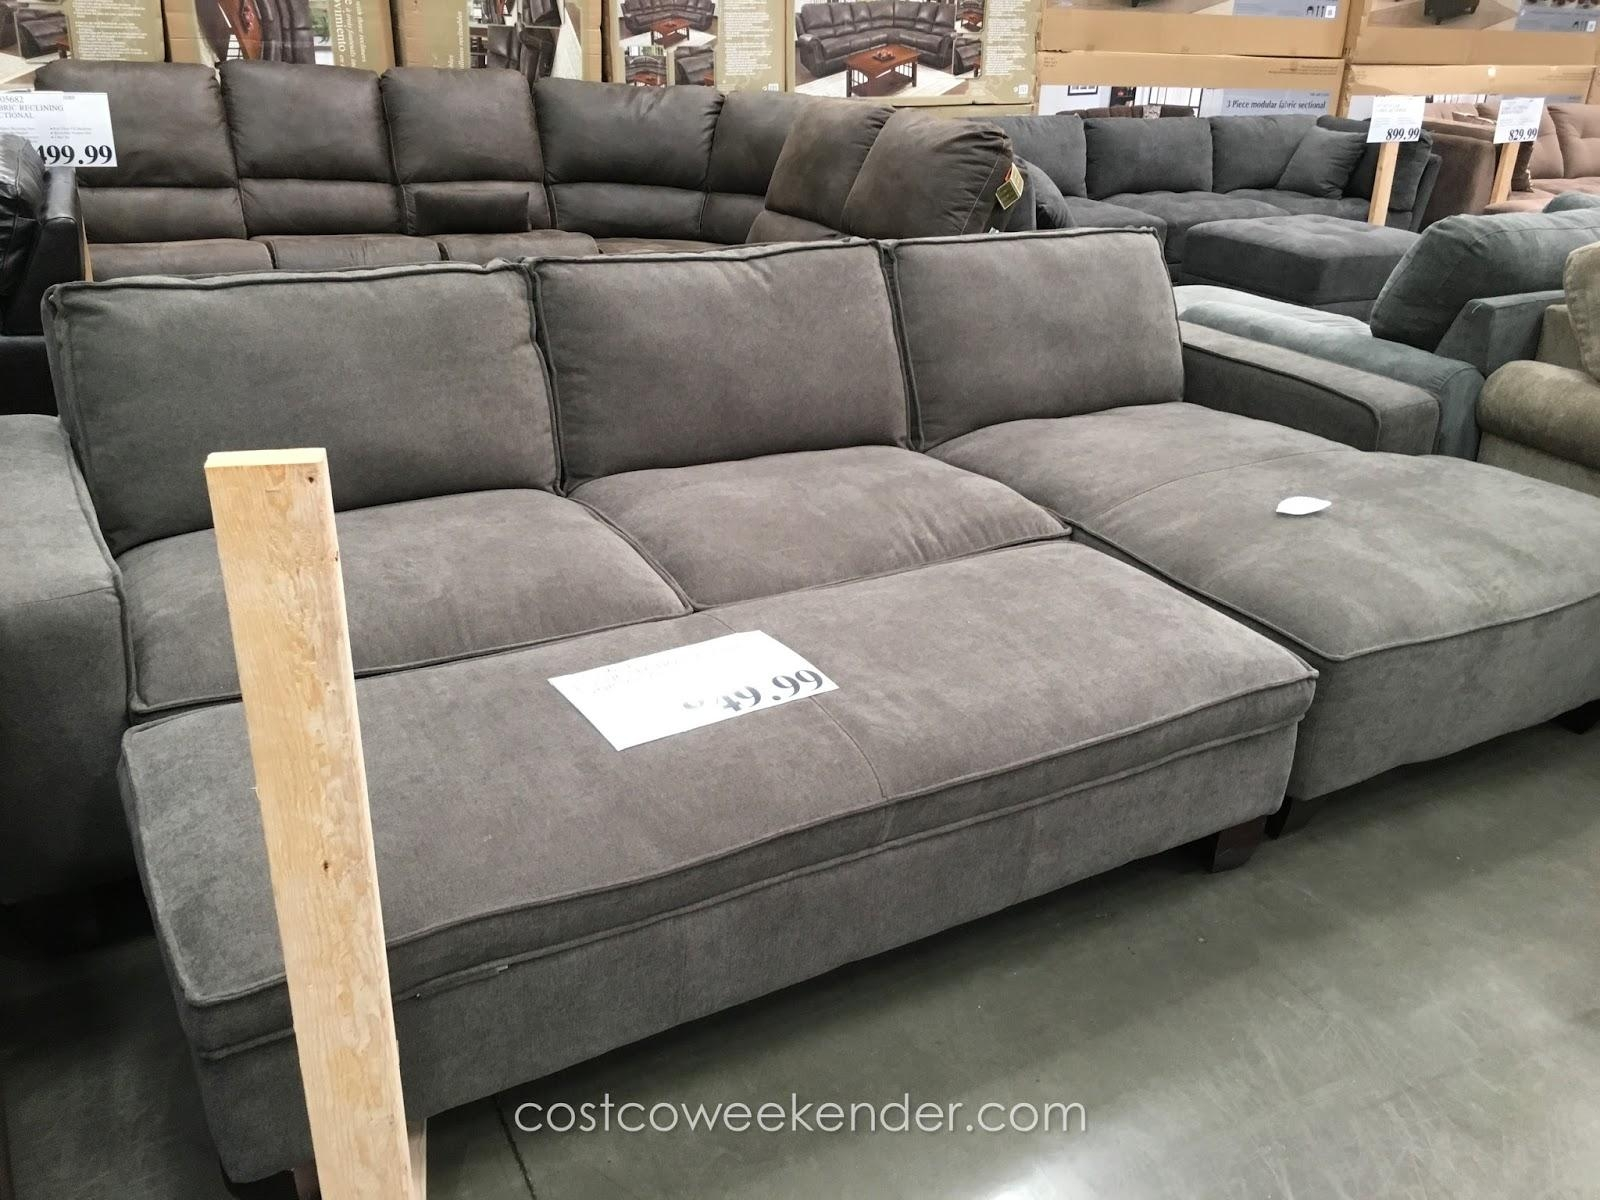 55 Large Sectional Sofa With Ottoman, Home Jackson Malibu Large intended for Sectional With Large Ottoman